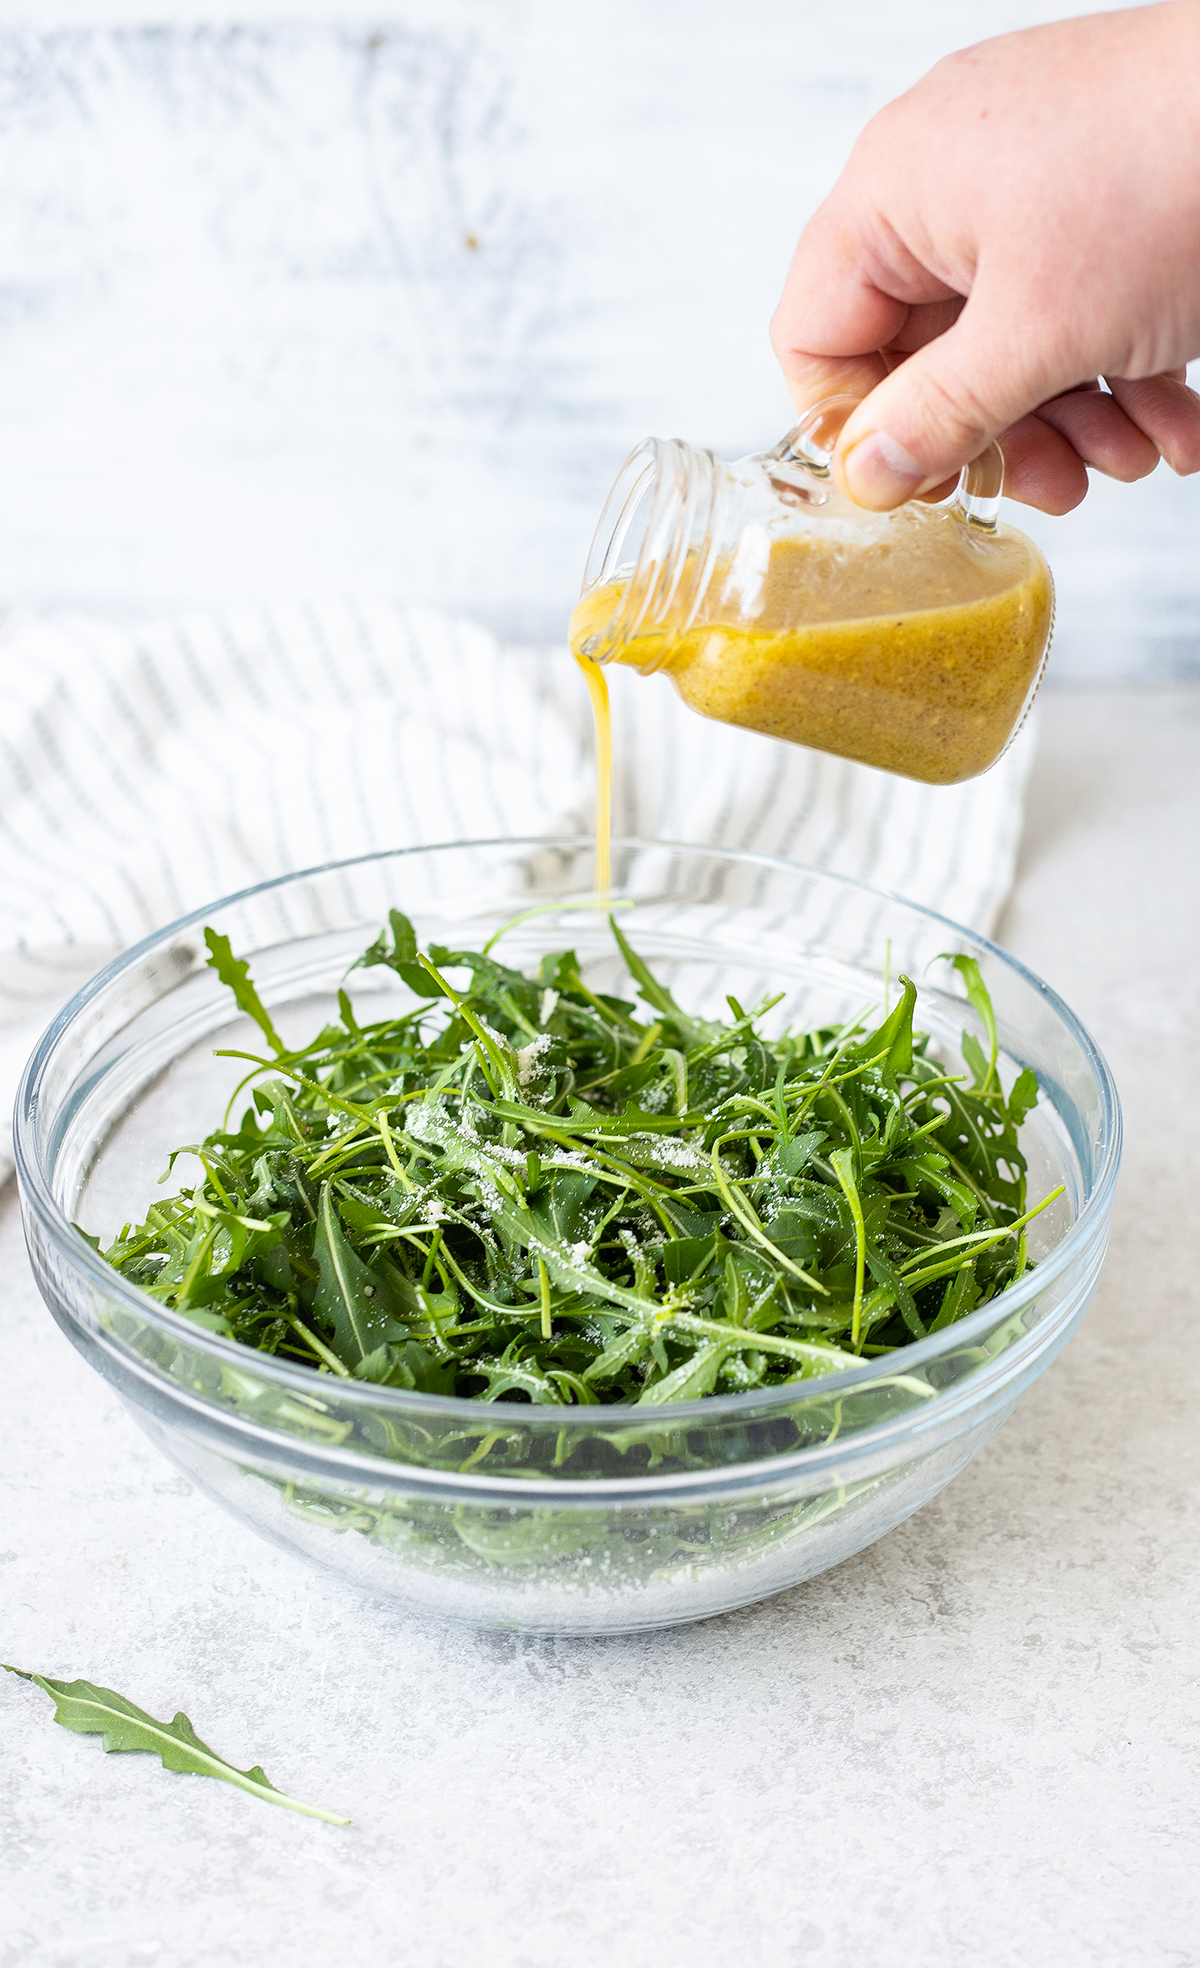 Pouring the Vinaigrette over the salad